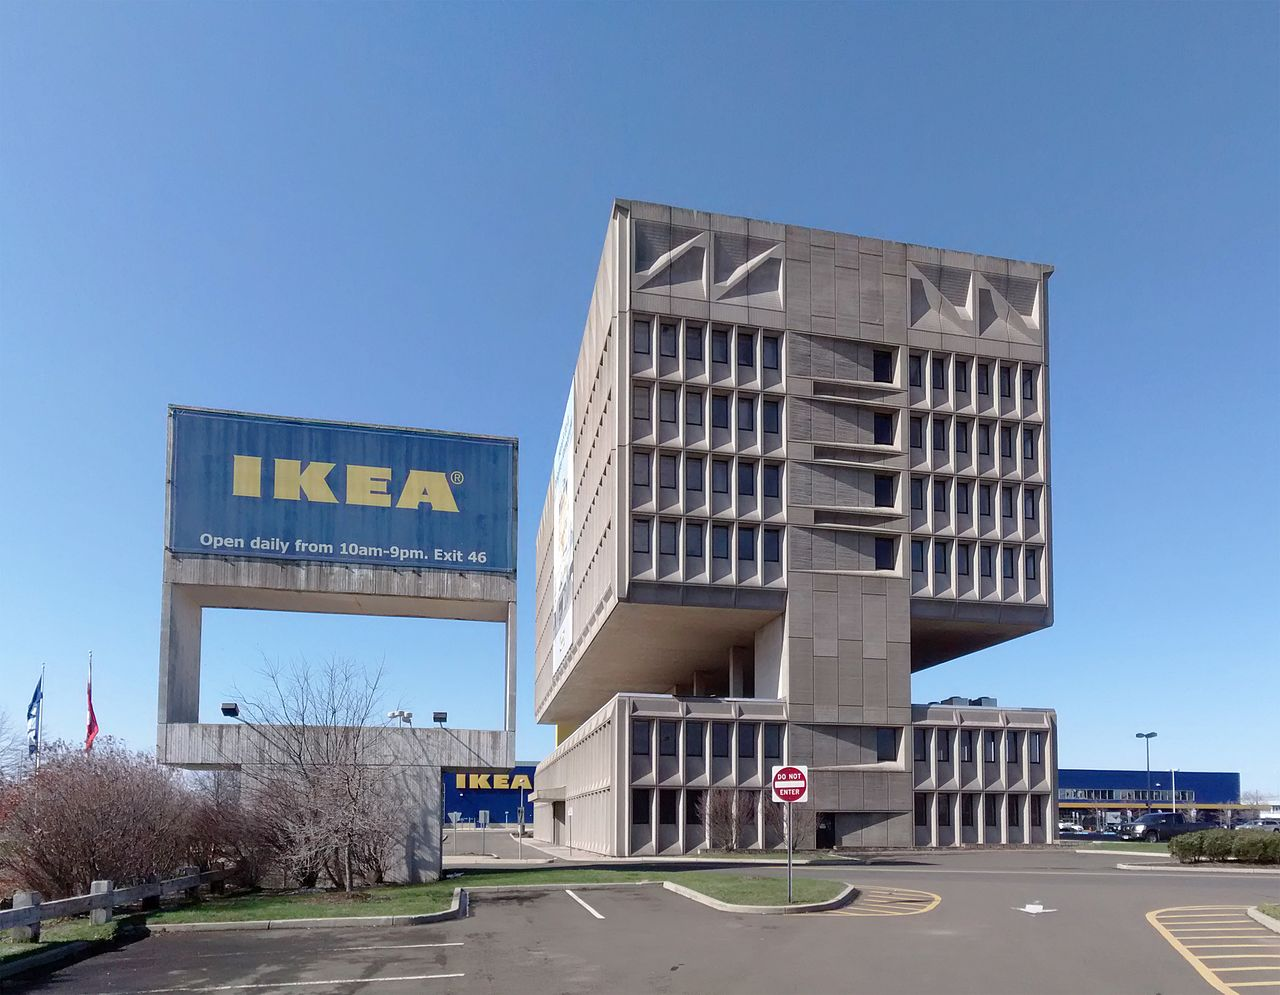 IKEA-Pirelli-Building-New-Haven-Connecticut-04-2014.jpg